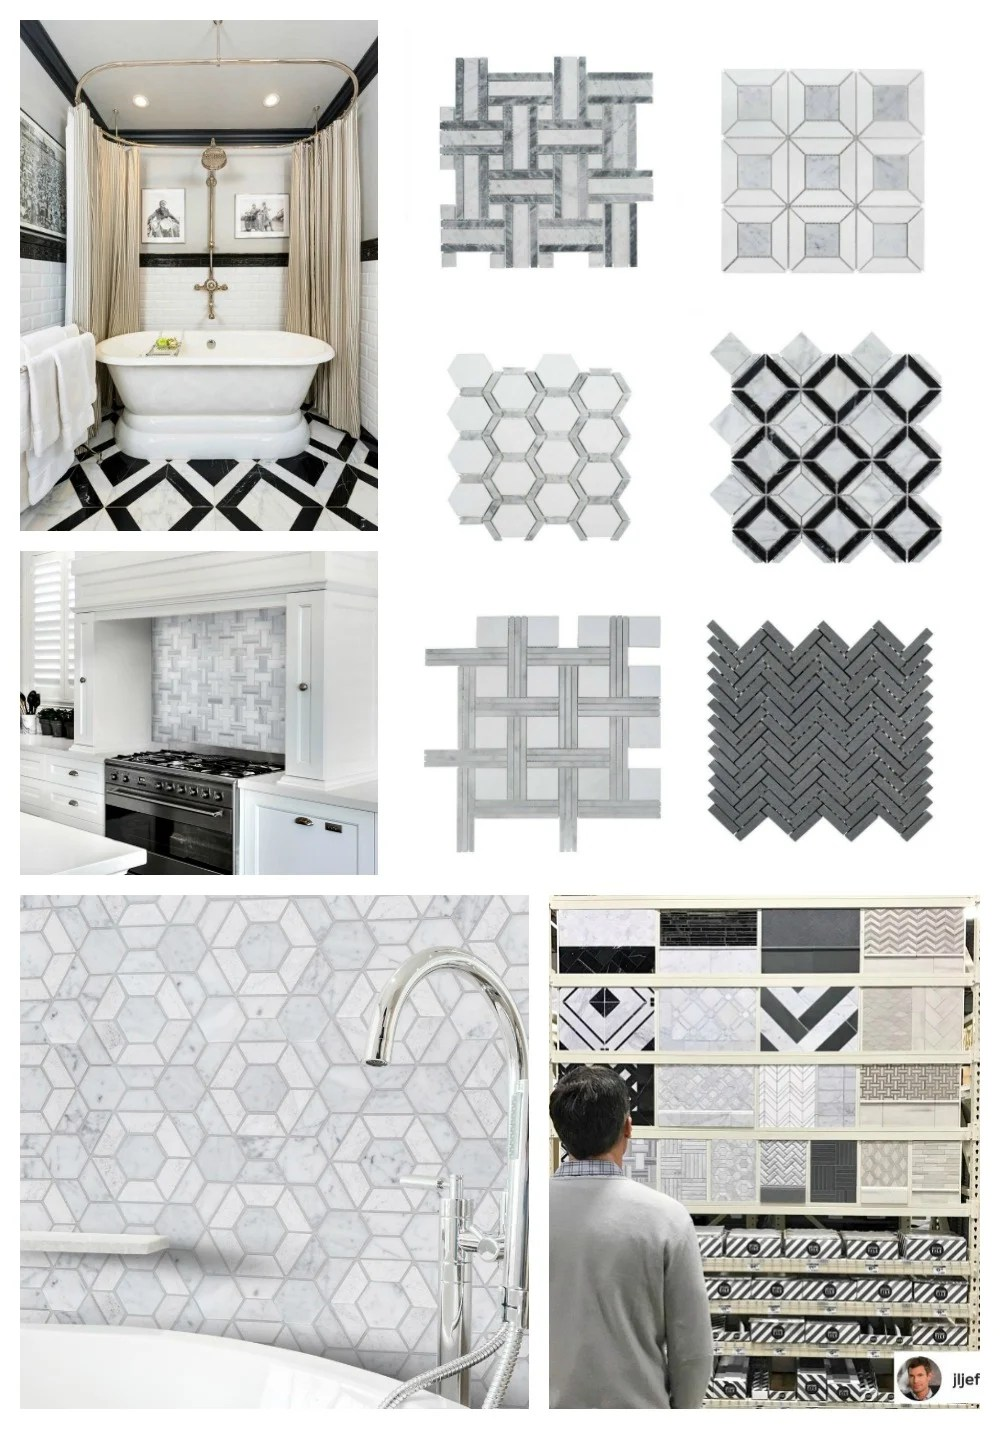 jeff lewis tile collection at home depot